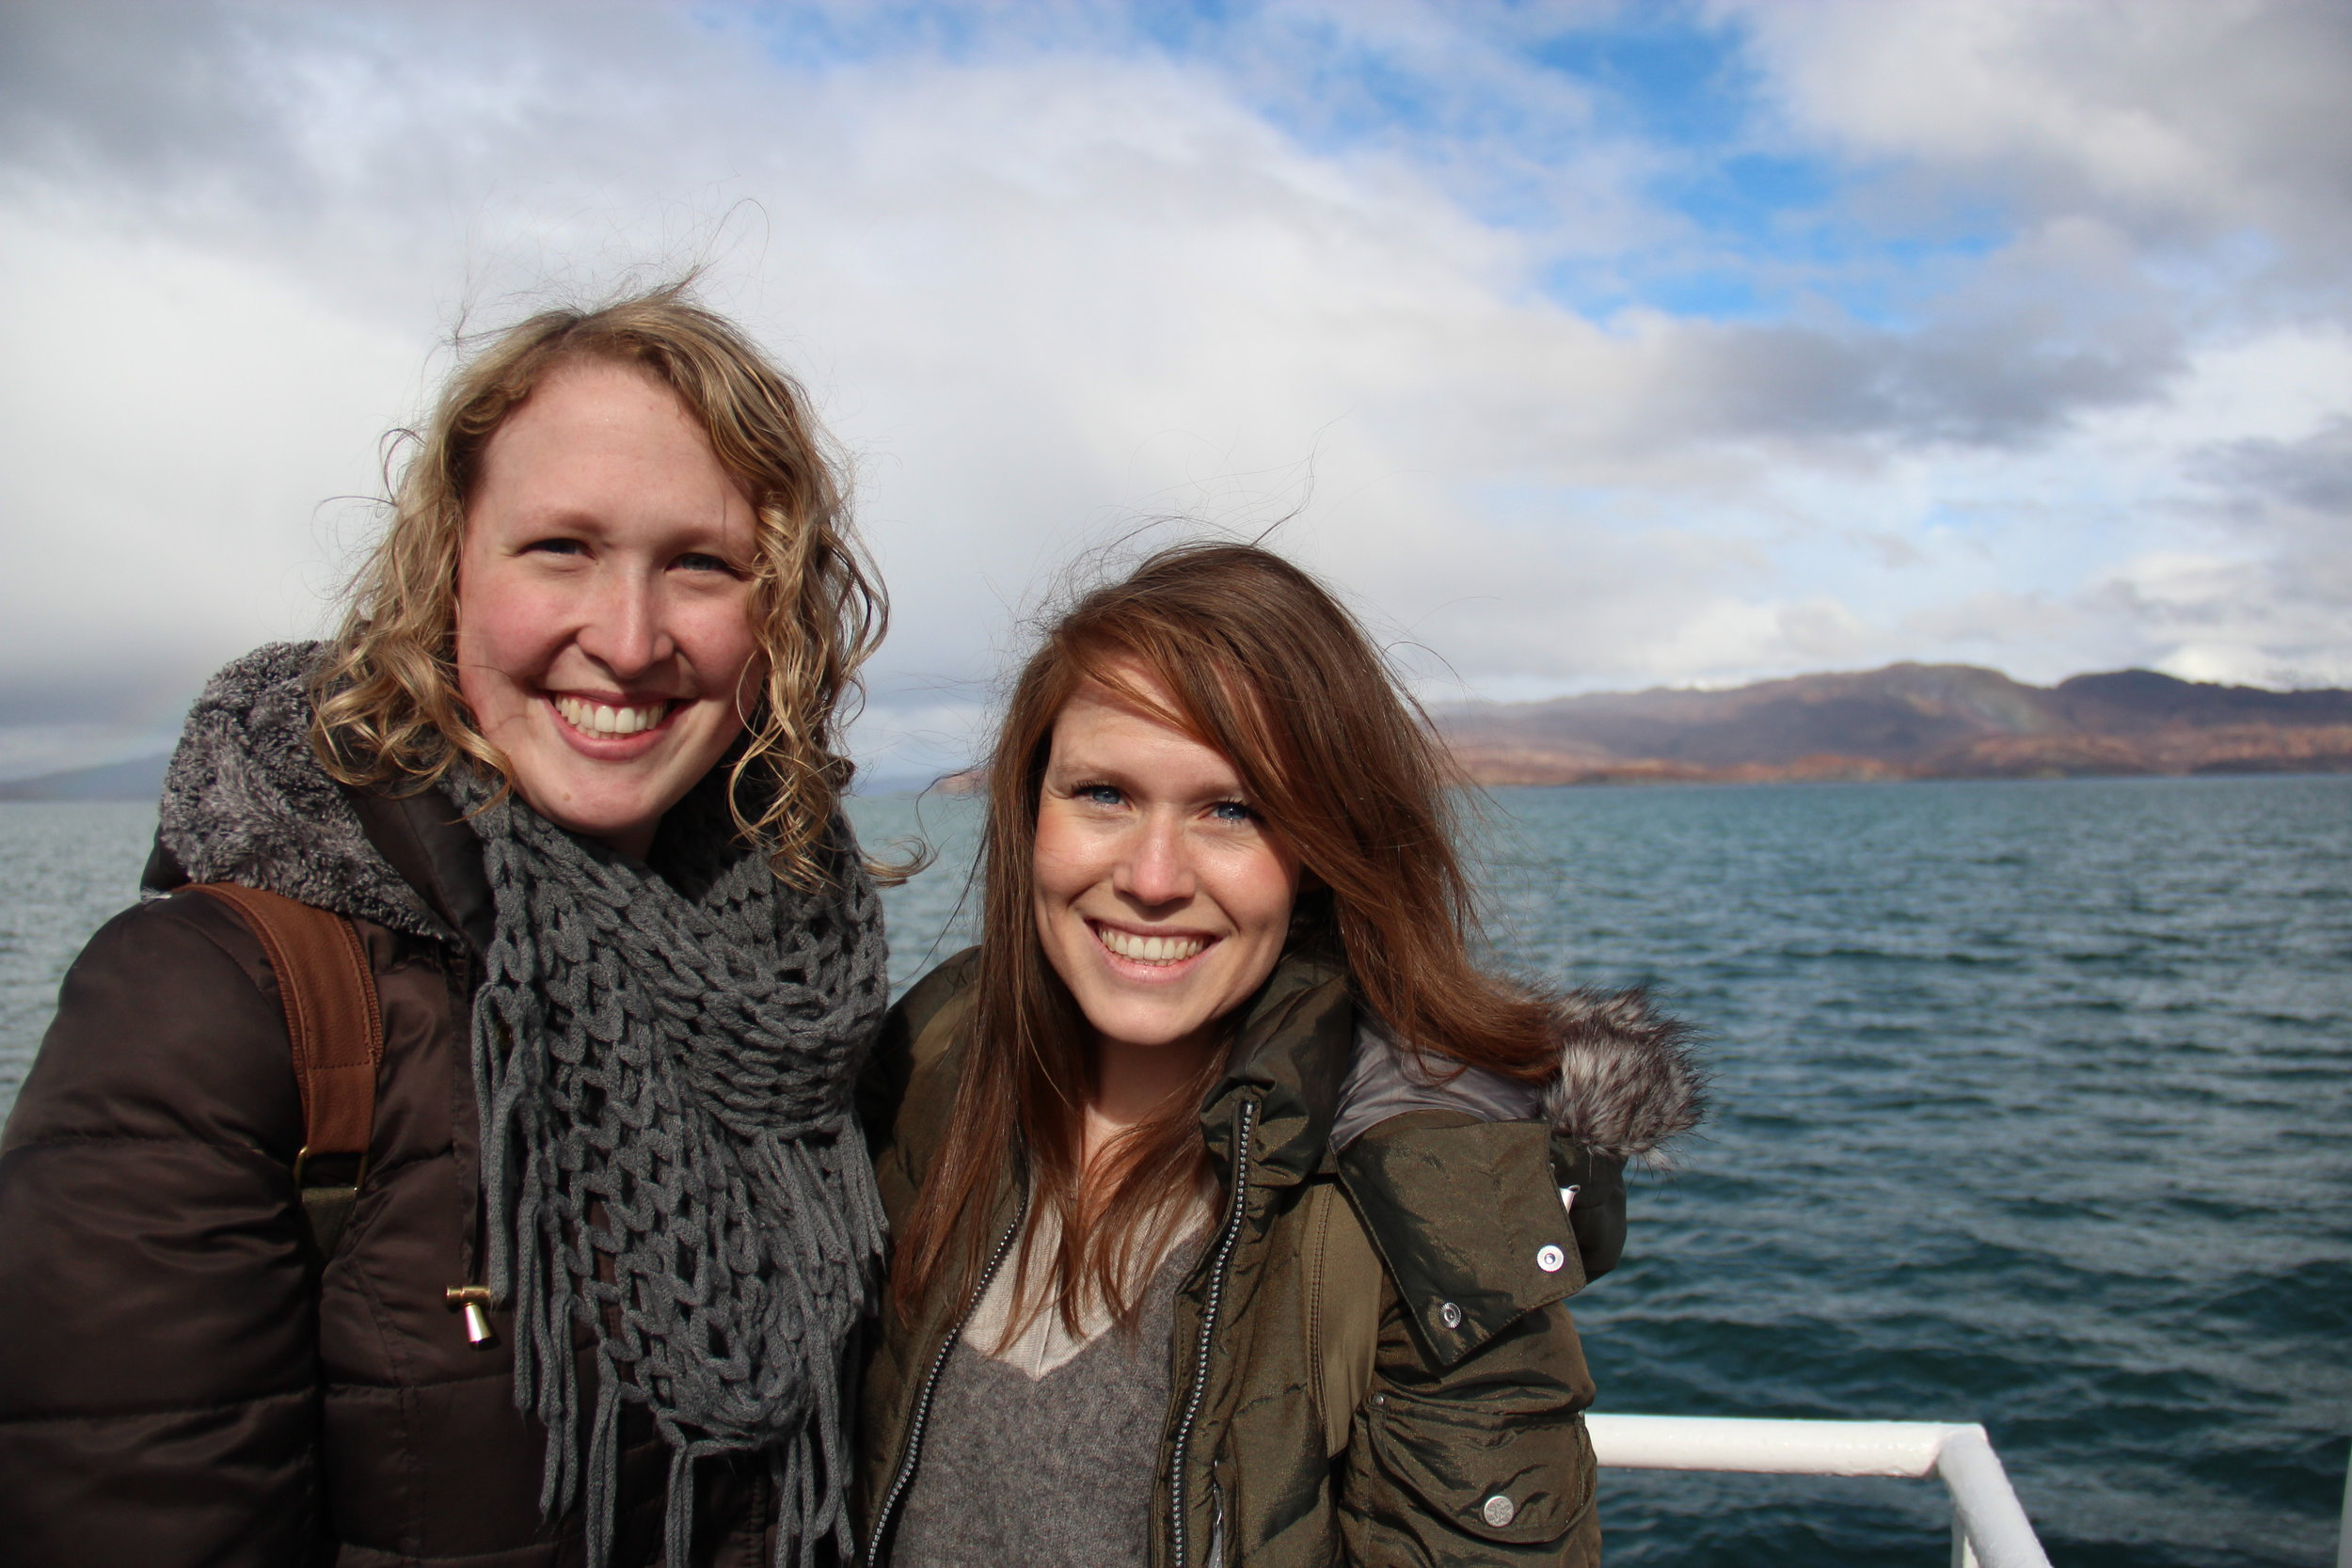 Taking the (unexpected) ferry to the Isle of Skye in the Scottish Highlands.